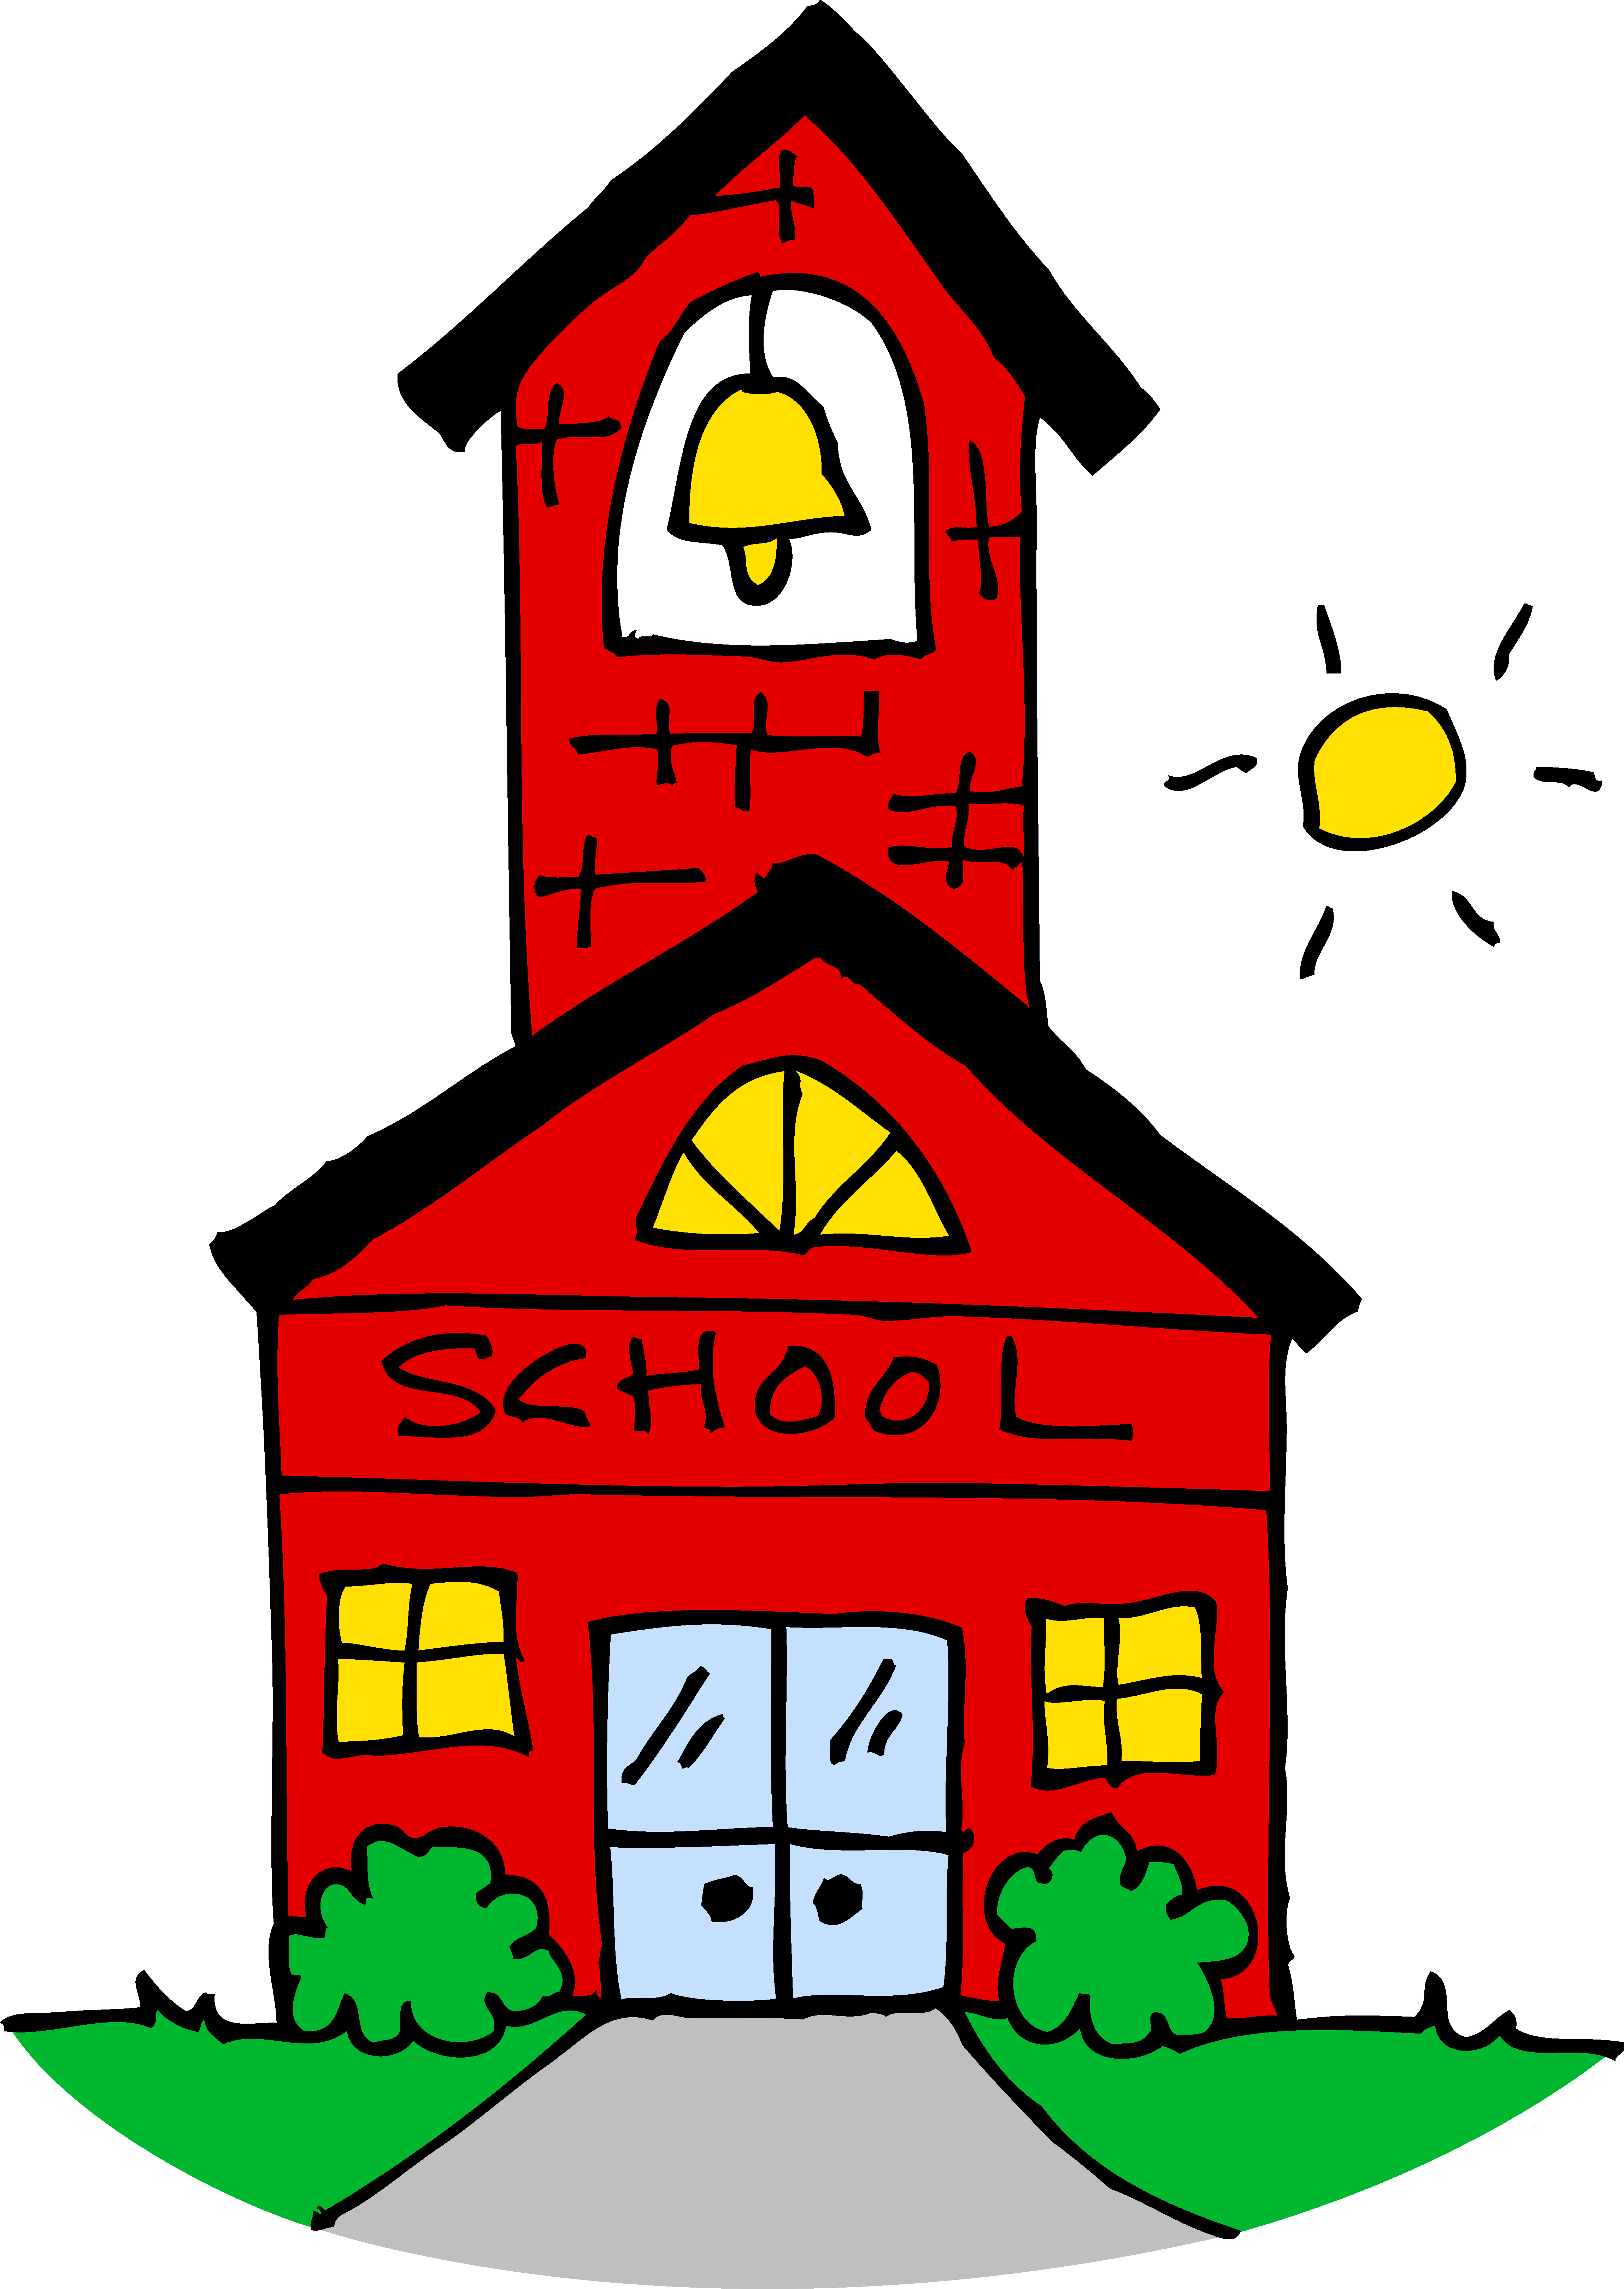 Free School Cliparts Free, Download Free Clip Art, Free ...